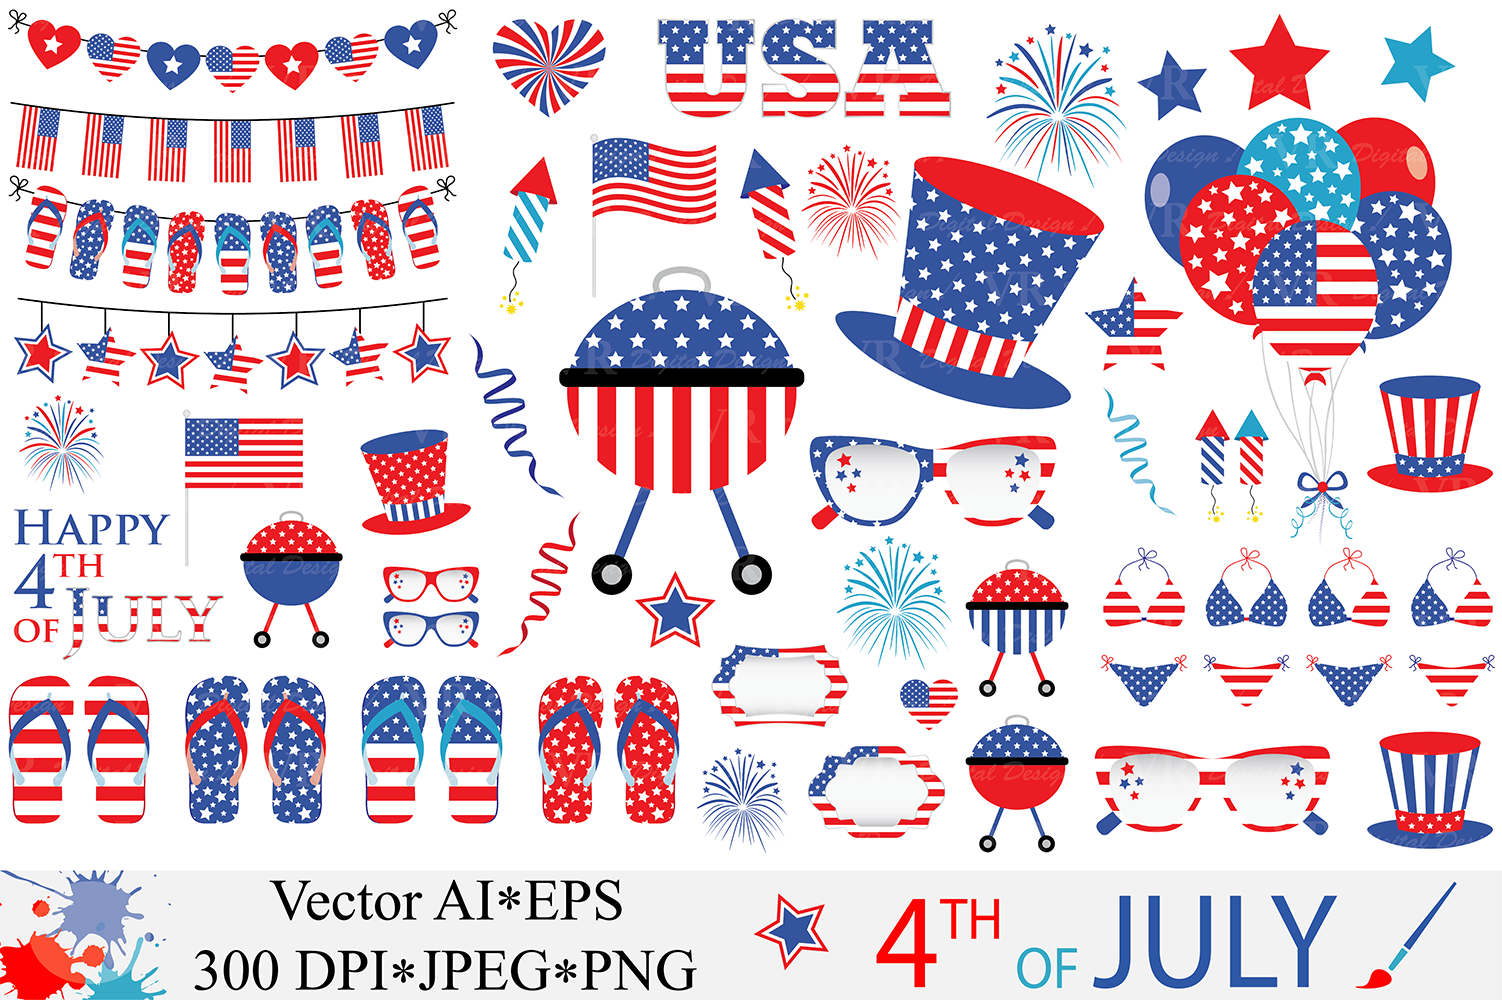 4th of July Clipart / USA Patriotic Vector Graphics / Independence Day  Illustrations.